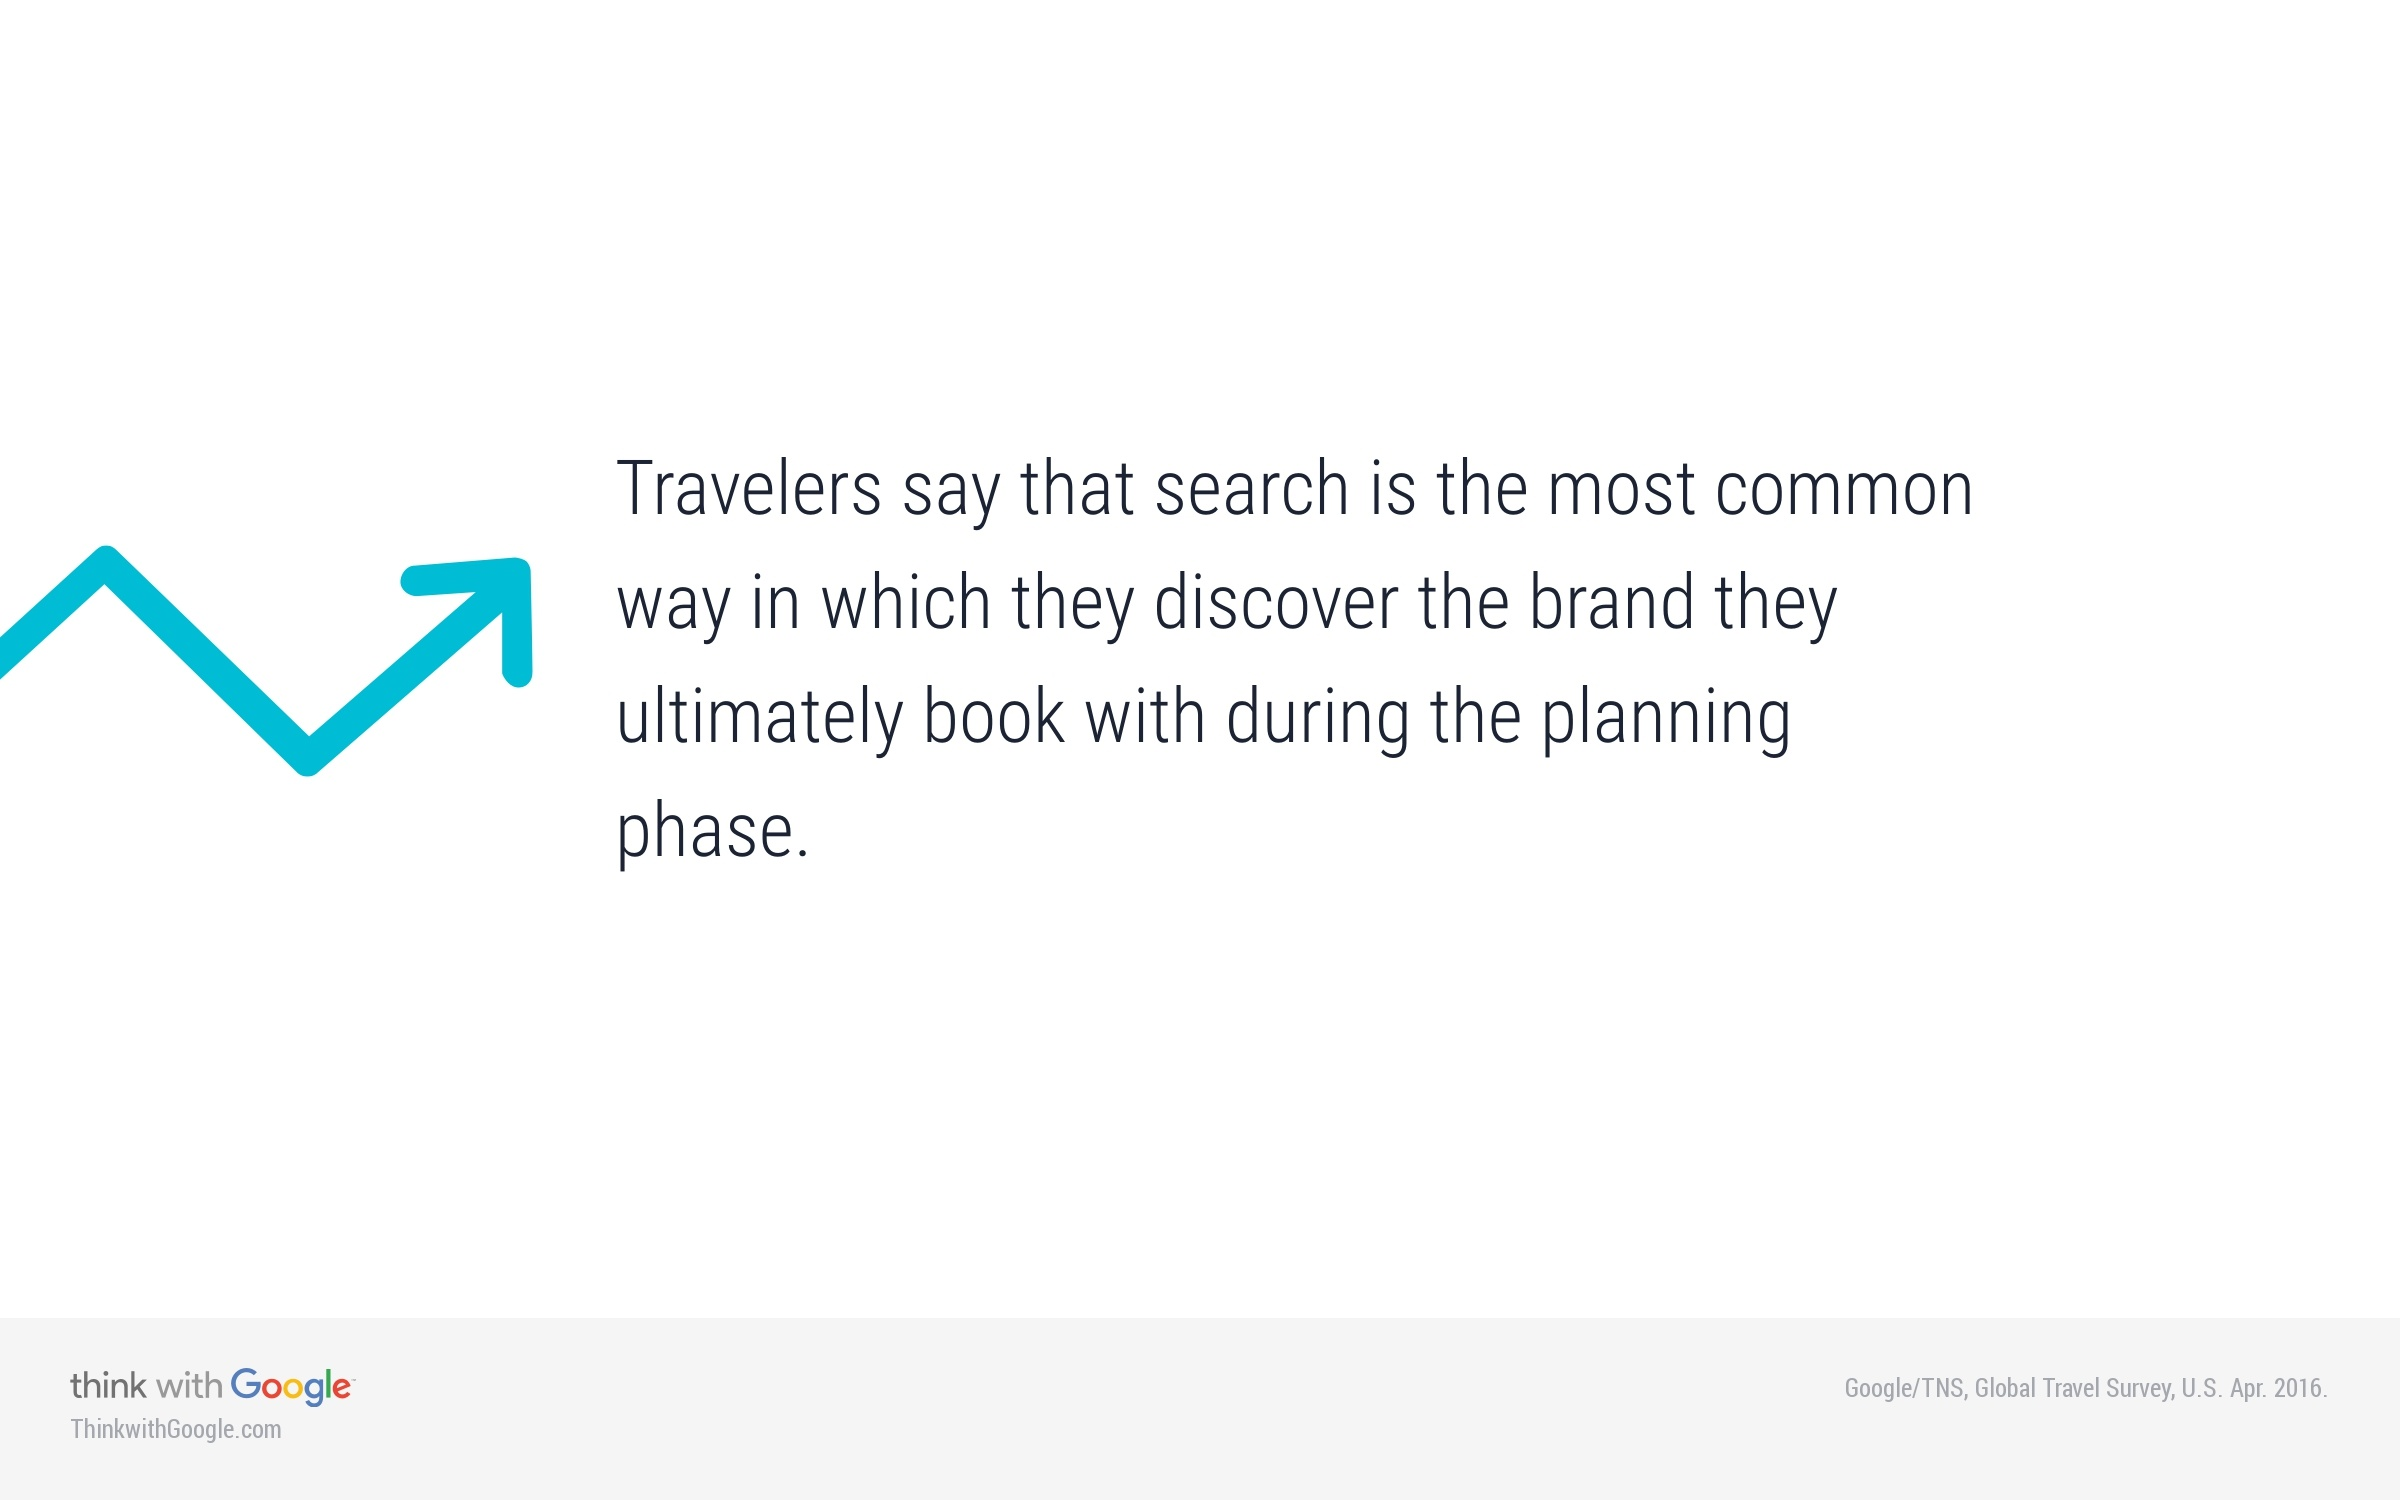 how-the-travel-research-process-plays-out-in-time-to-make-a-plan-moments (1).jpg